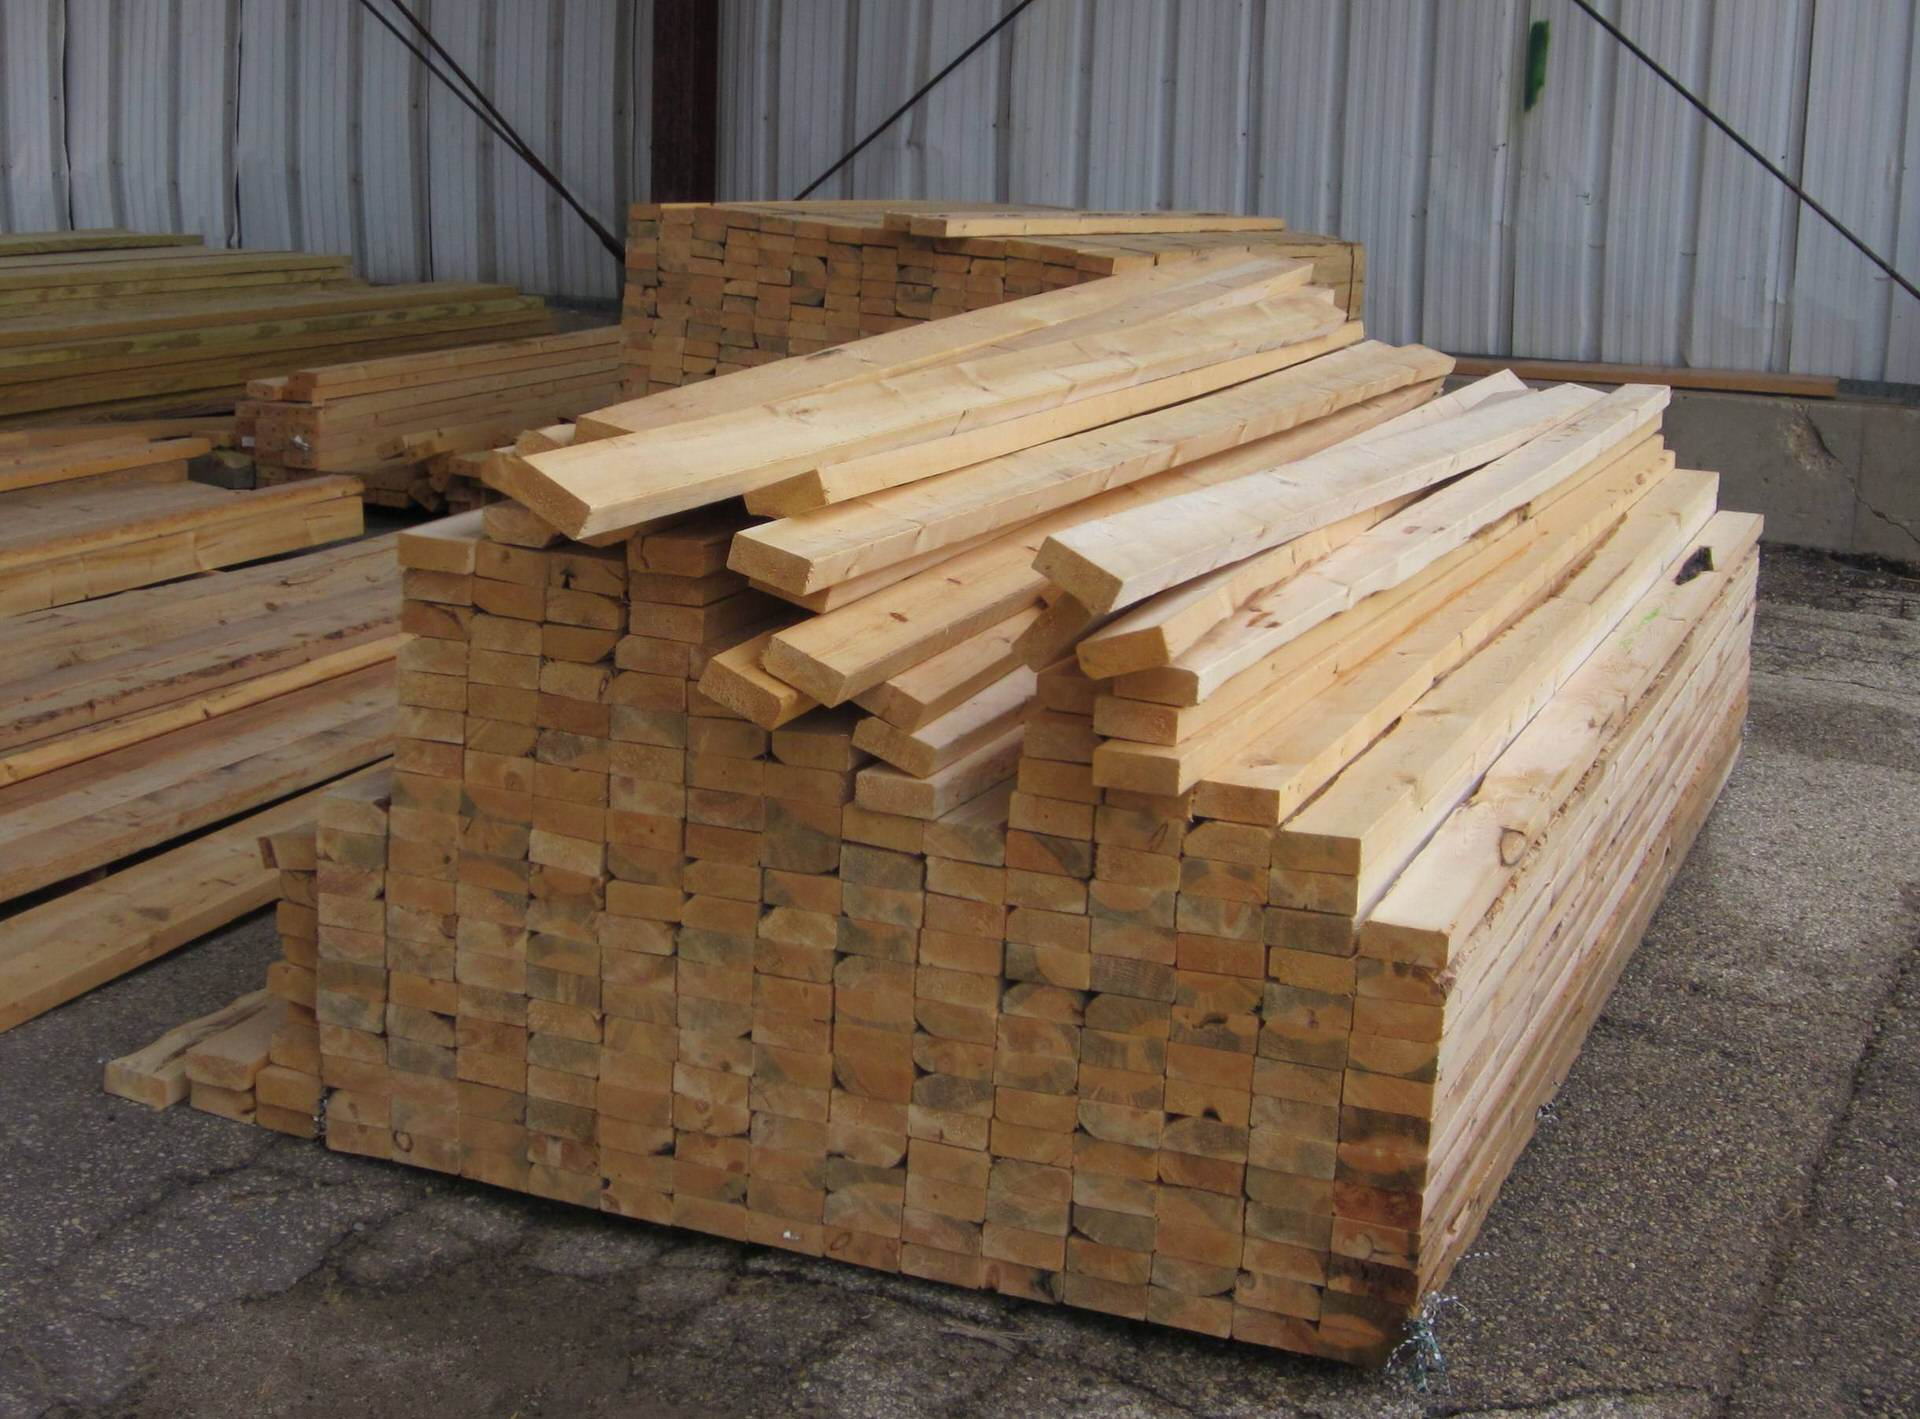 Marling lumber and homeworks